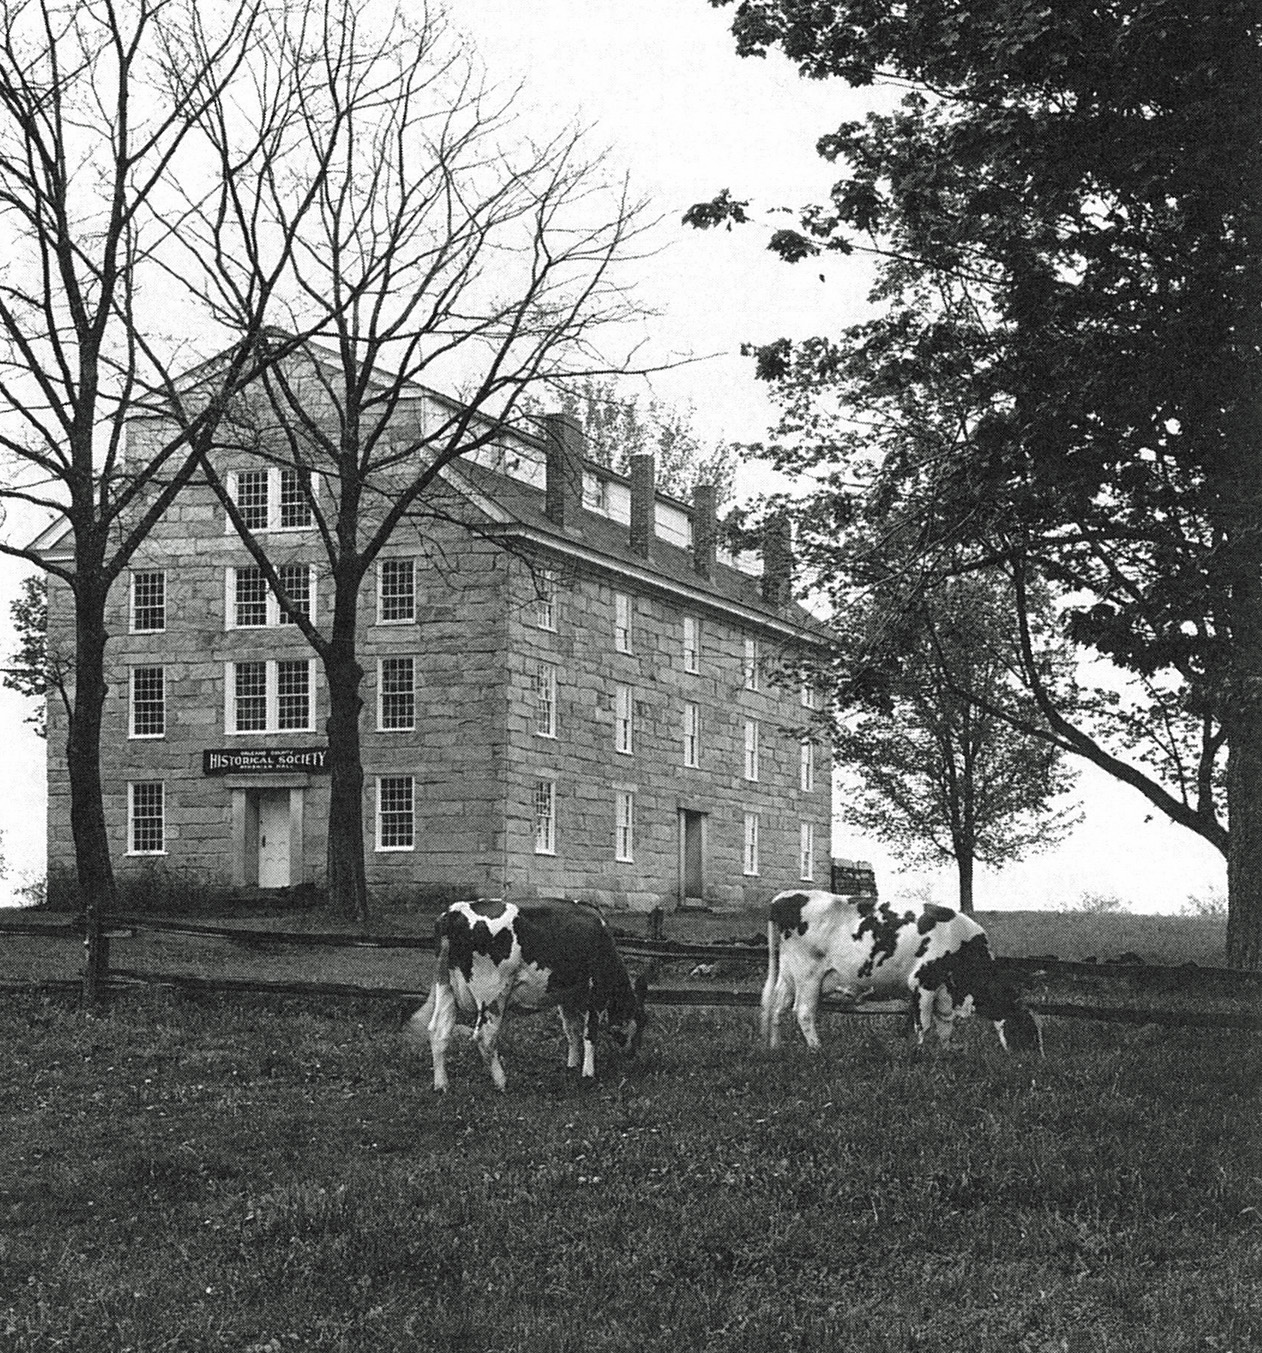 Photograph of cows in front of a large stone building.